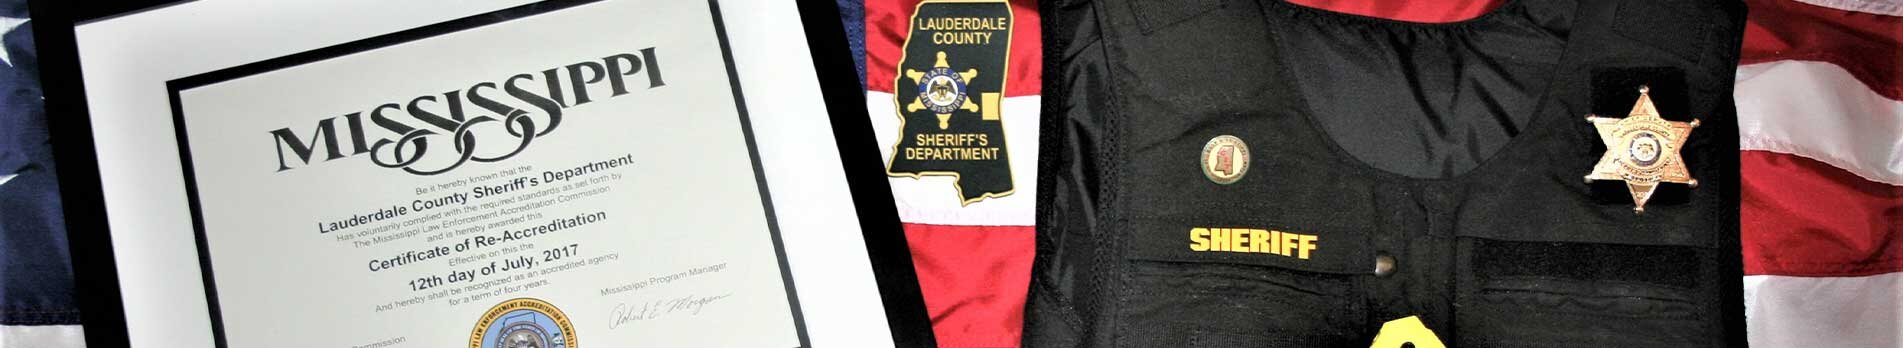 3 items resting against the Flag of the United States of America. Those items are a framed Certificate of Re-Accreditation, the Lauderdale County Sheriff's Department patch, and a bullet proof vest.